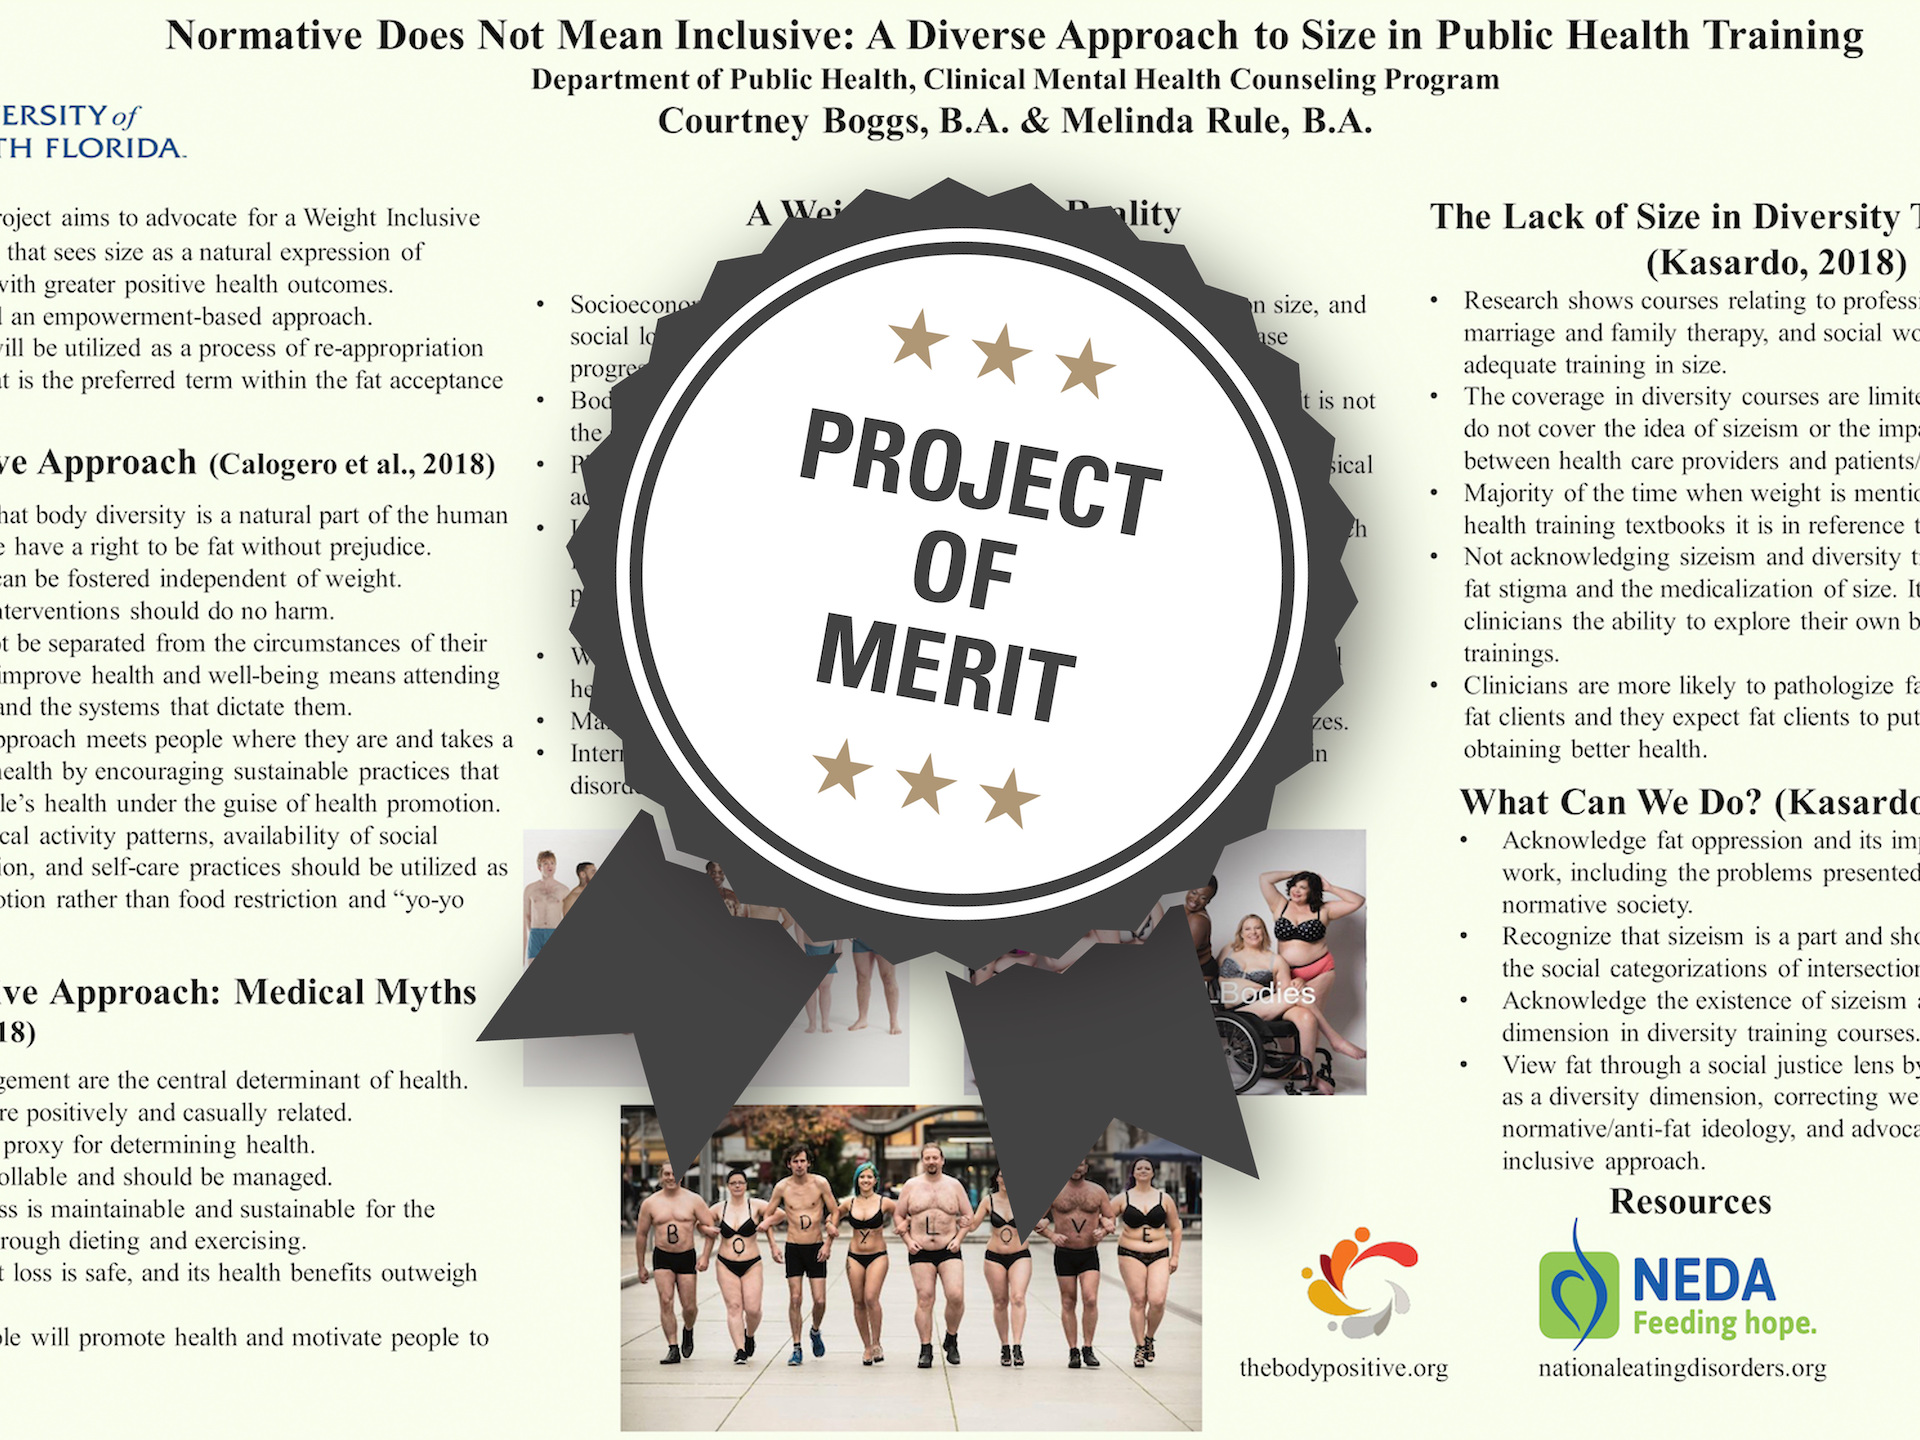 Normative Does Not Mean Inclusive: A Diverse Approach to Size in Public Health Training​ Project of Merit poster